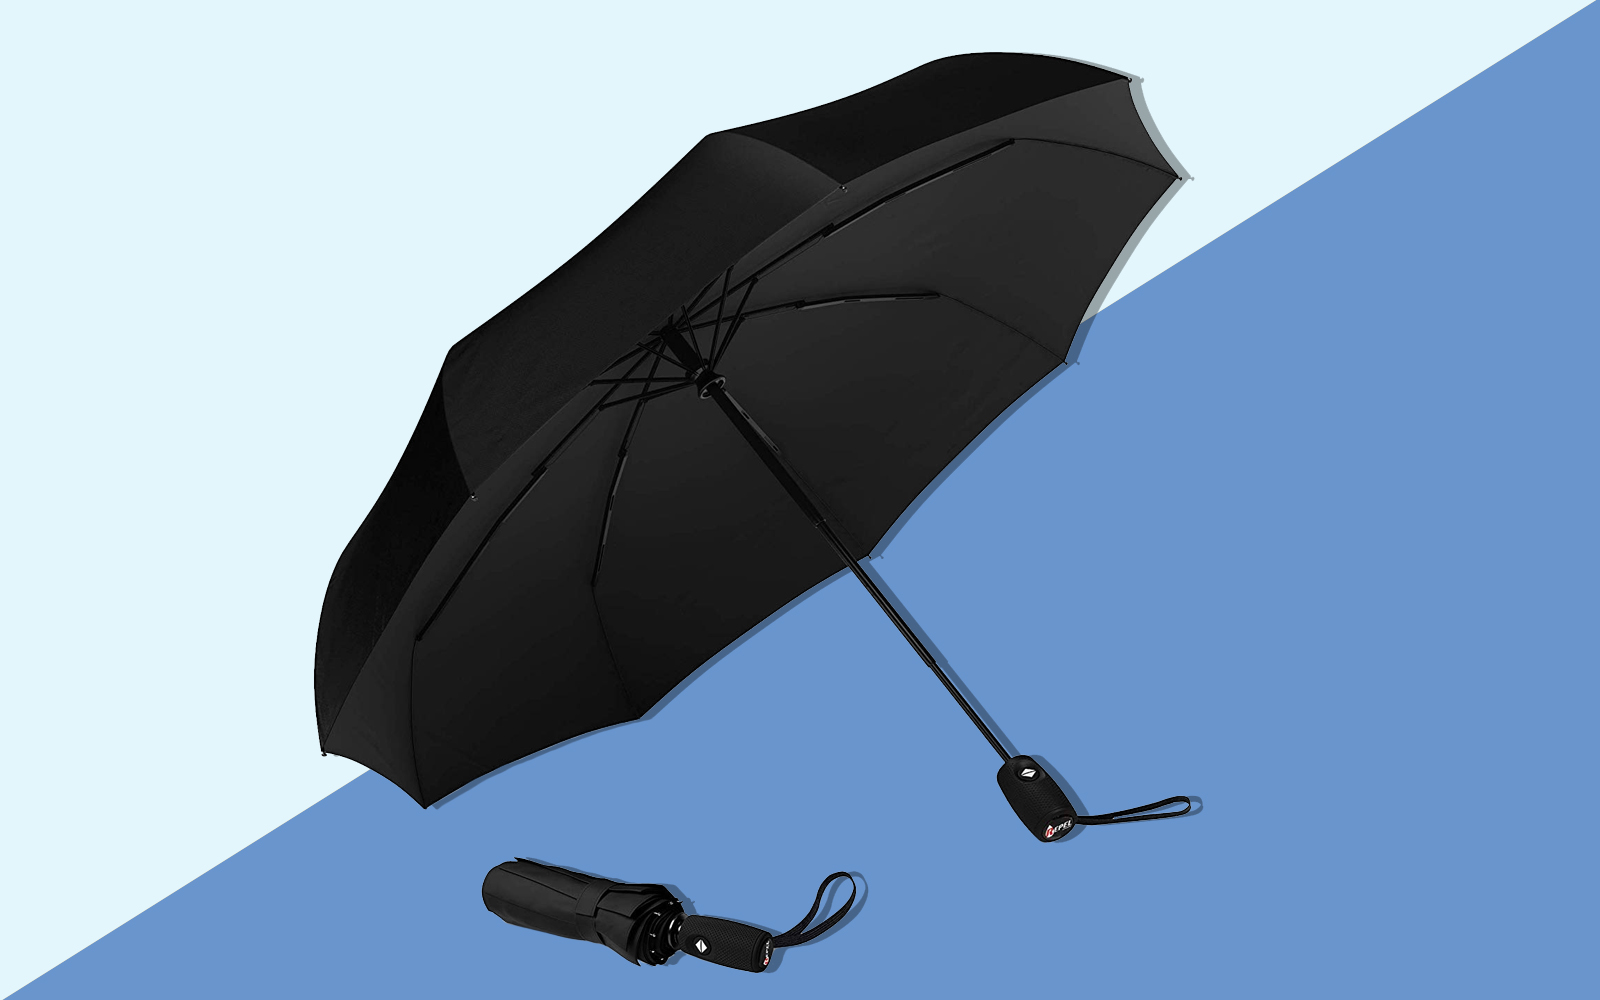 Amazon's Best-selling Umbrella Is Nearly Indestructible — and It Has Over 5,000 Perfect Reviews to Prove It